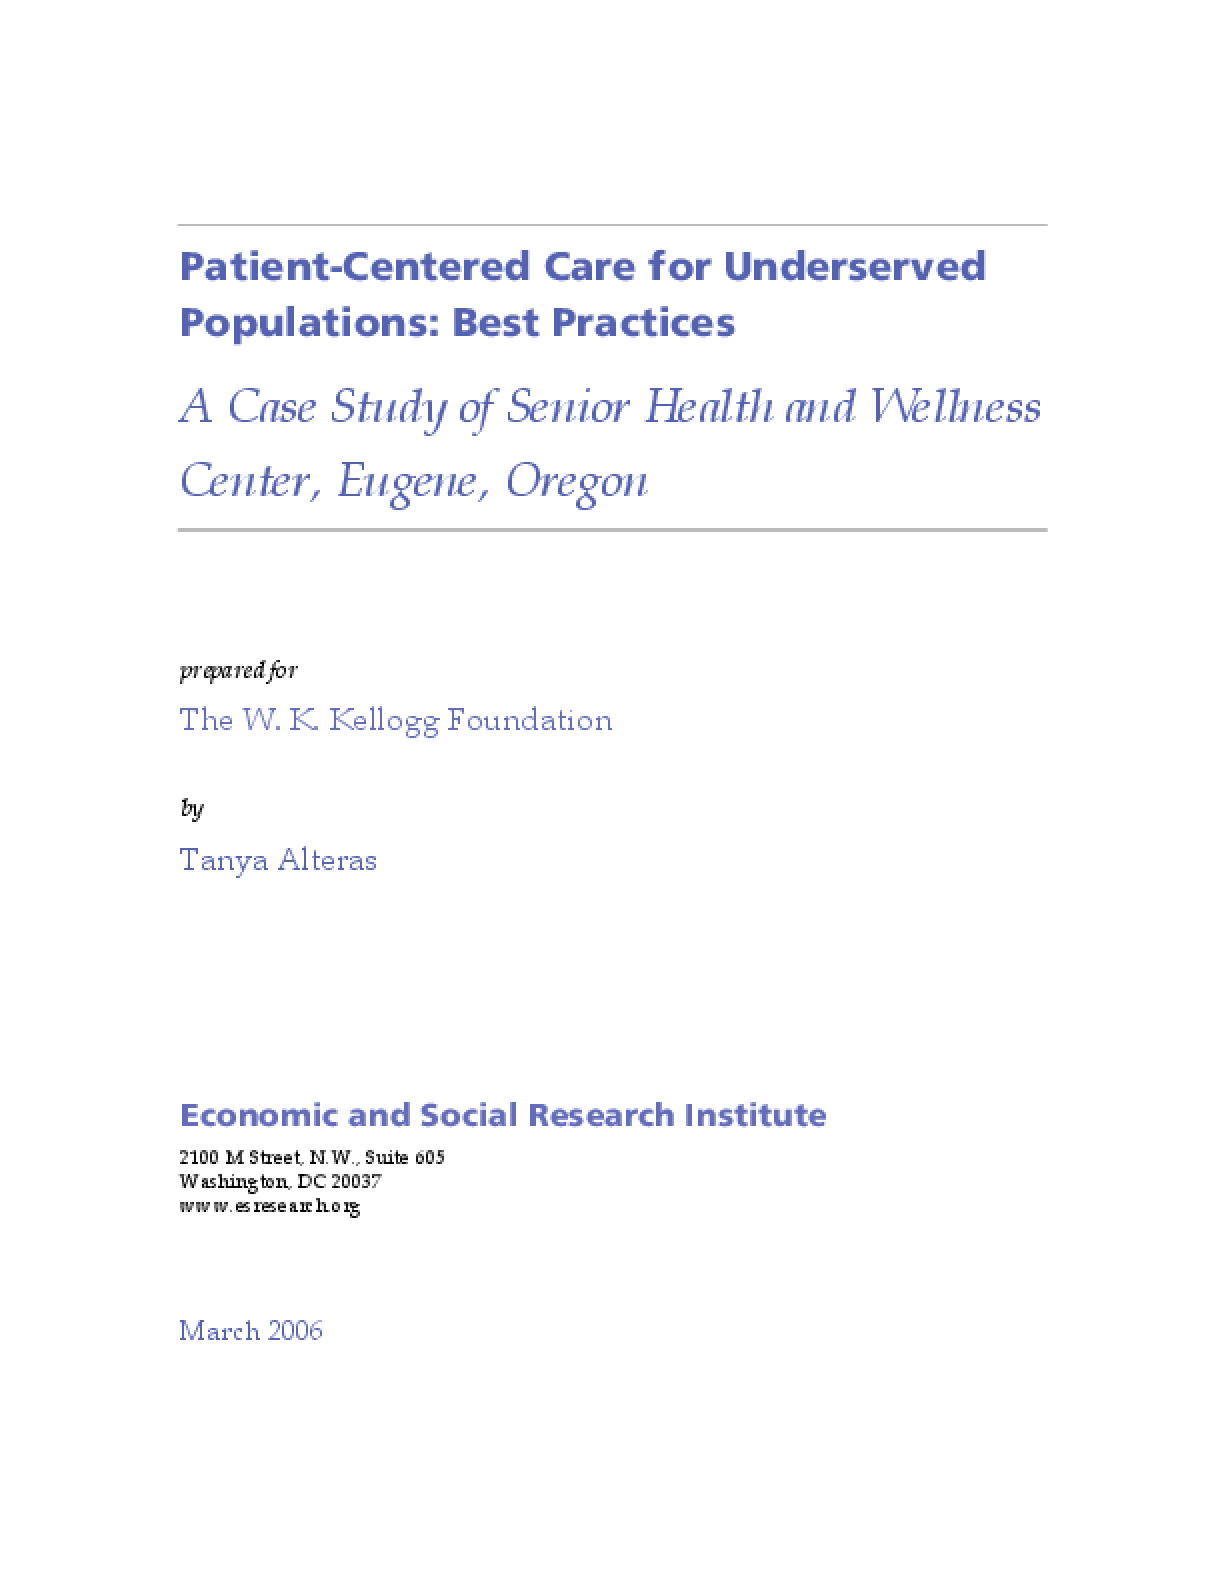 Patient-Centered Care for Underserved Populations: Best Practices, A Case Study of Senior Health and Wellness Center, Eugene, Oregon